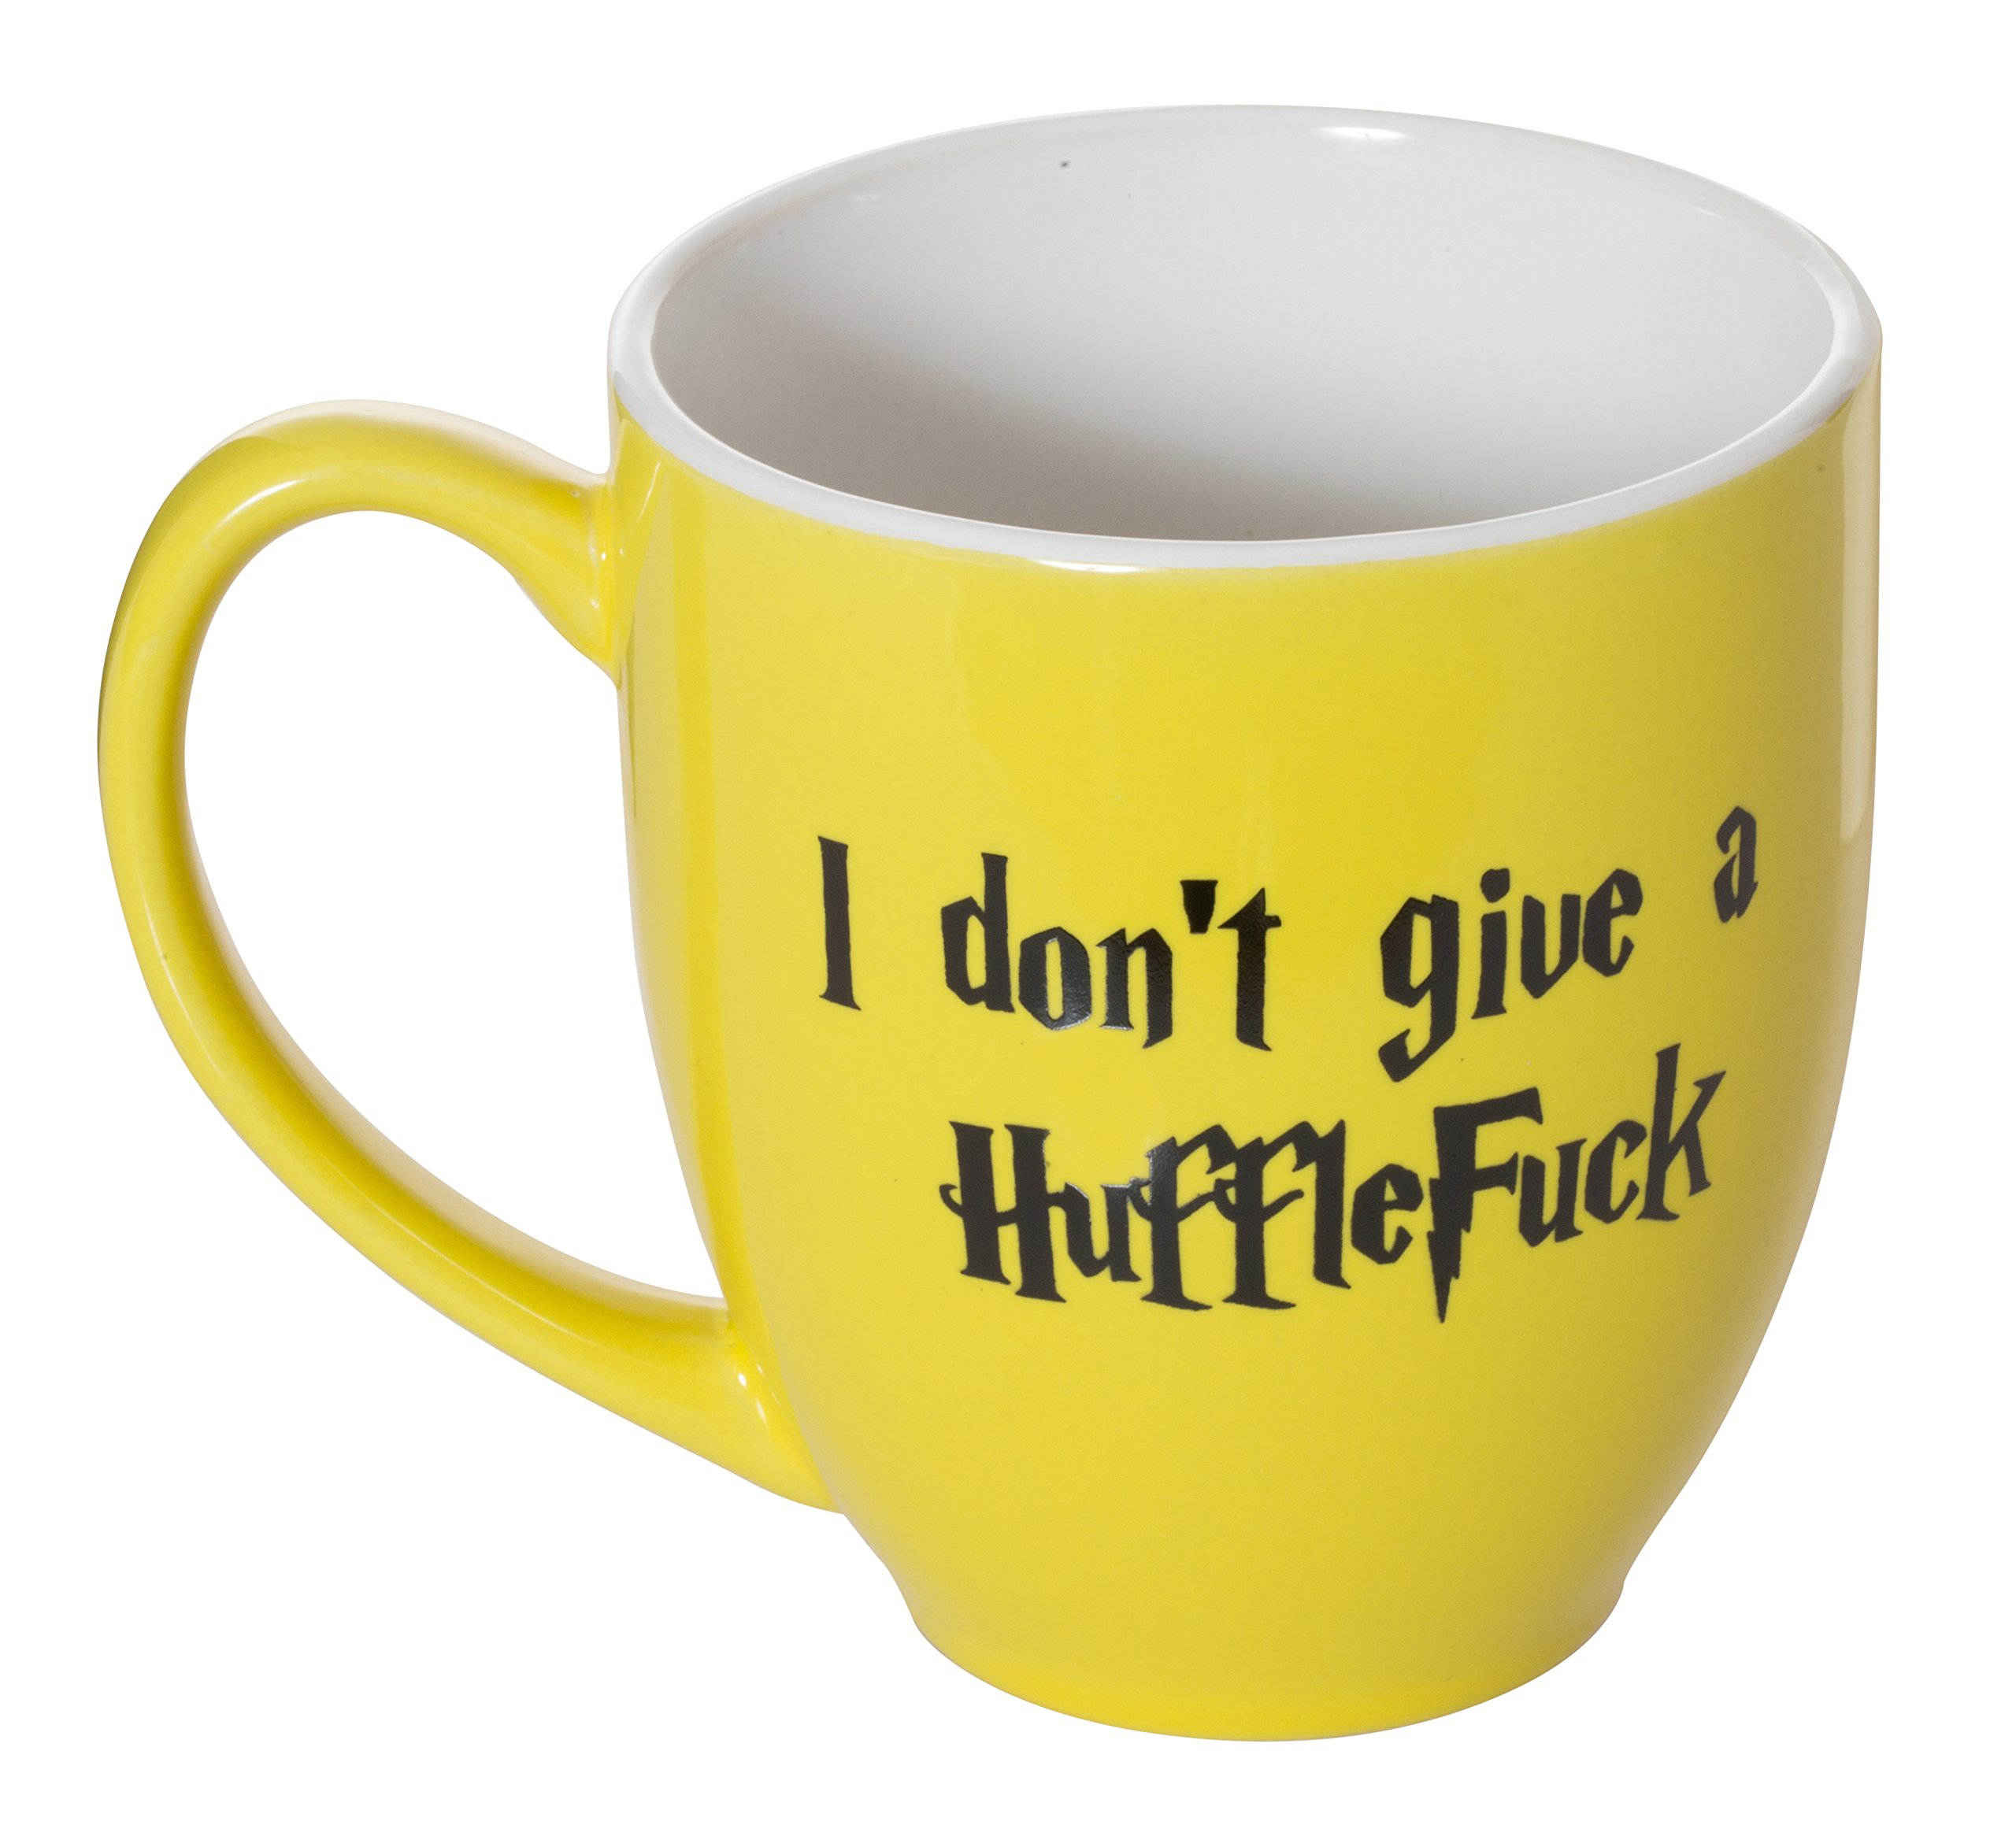 I Don't Give A HuffleFuck - 15oz Bistro Deluxe Double-Sided Coffee Tea Mug (HuffleFuck) by Artisan Owl (Image #4)